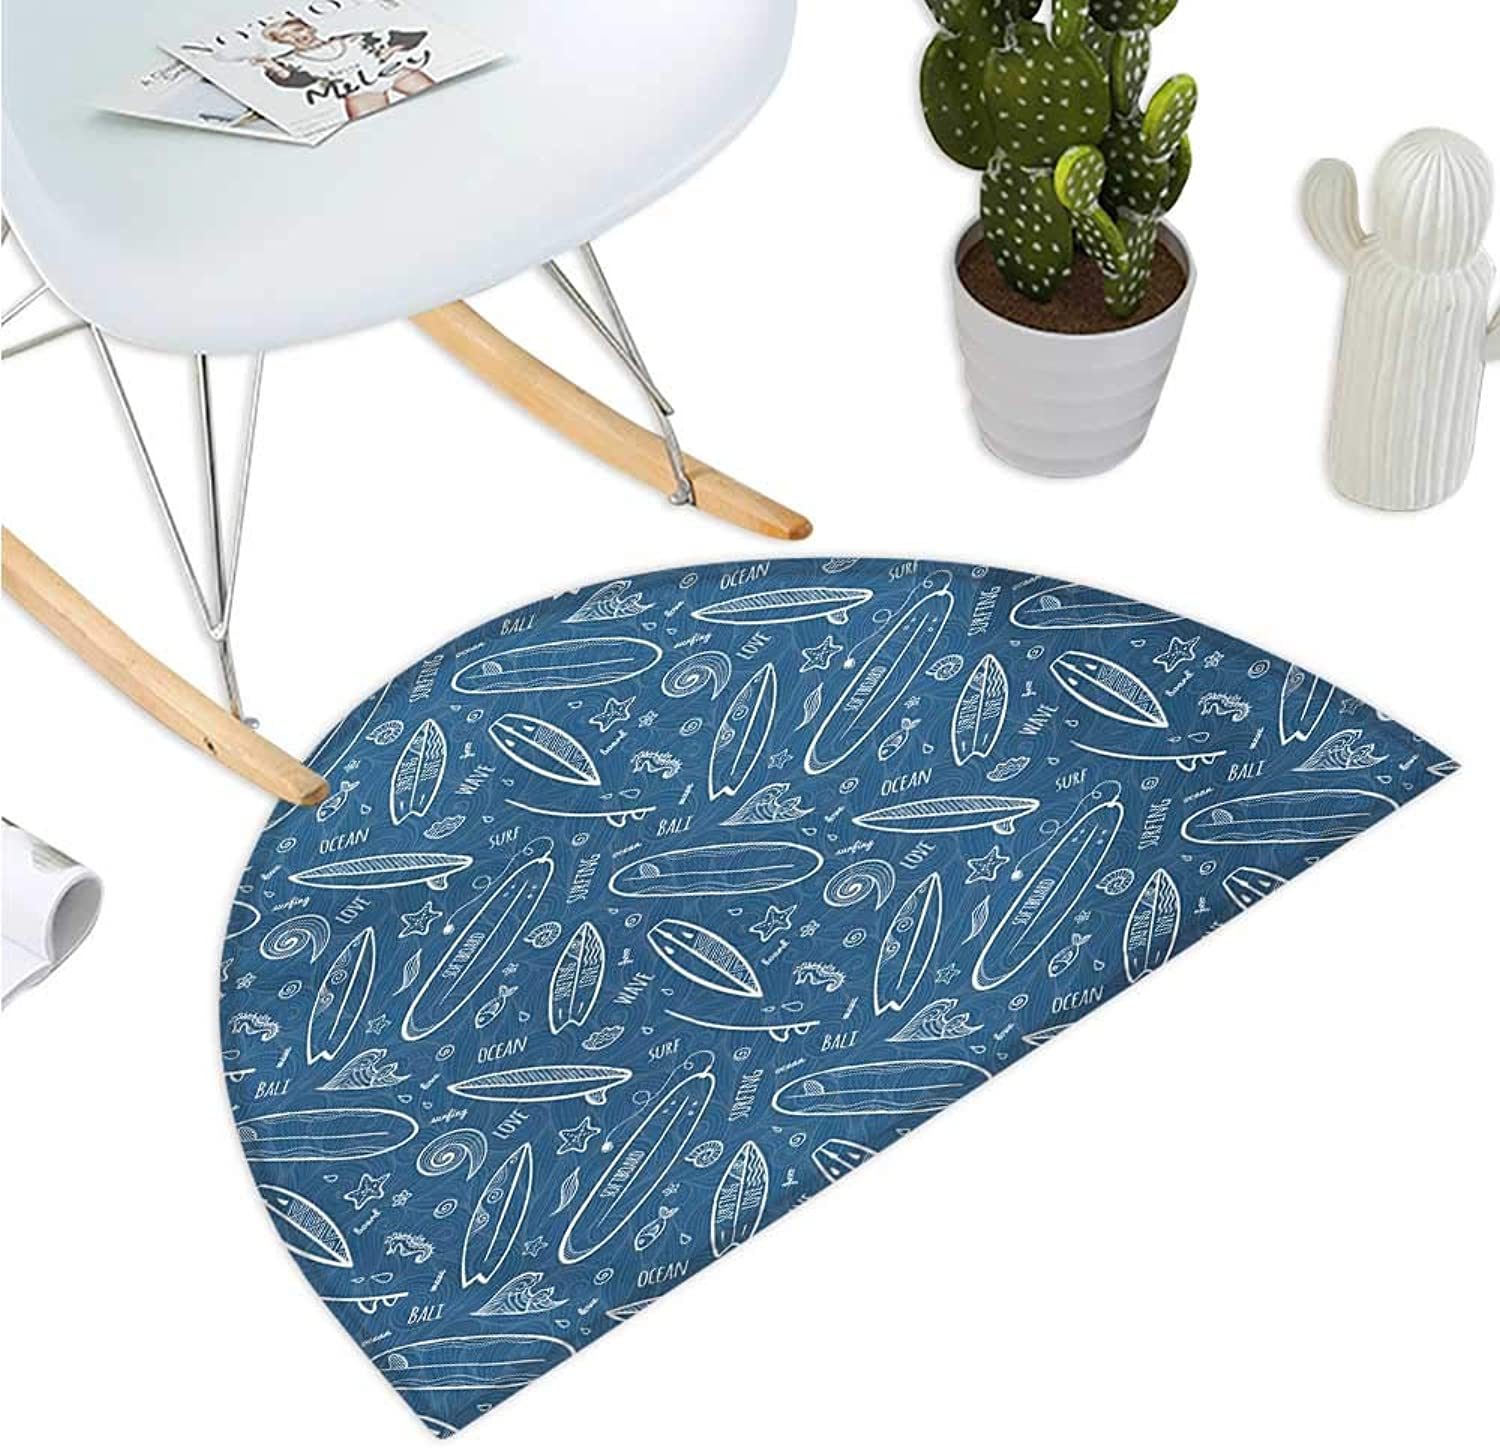 Surfboard Semicircular Cushion bluee Waters Oceanic Elements Waves Swirls Doodle White Outlines Hobby Fun Times Entry Door Mat H 51.1  xD 76.7  bluee White